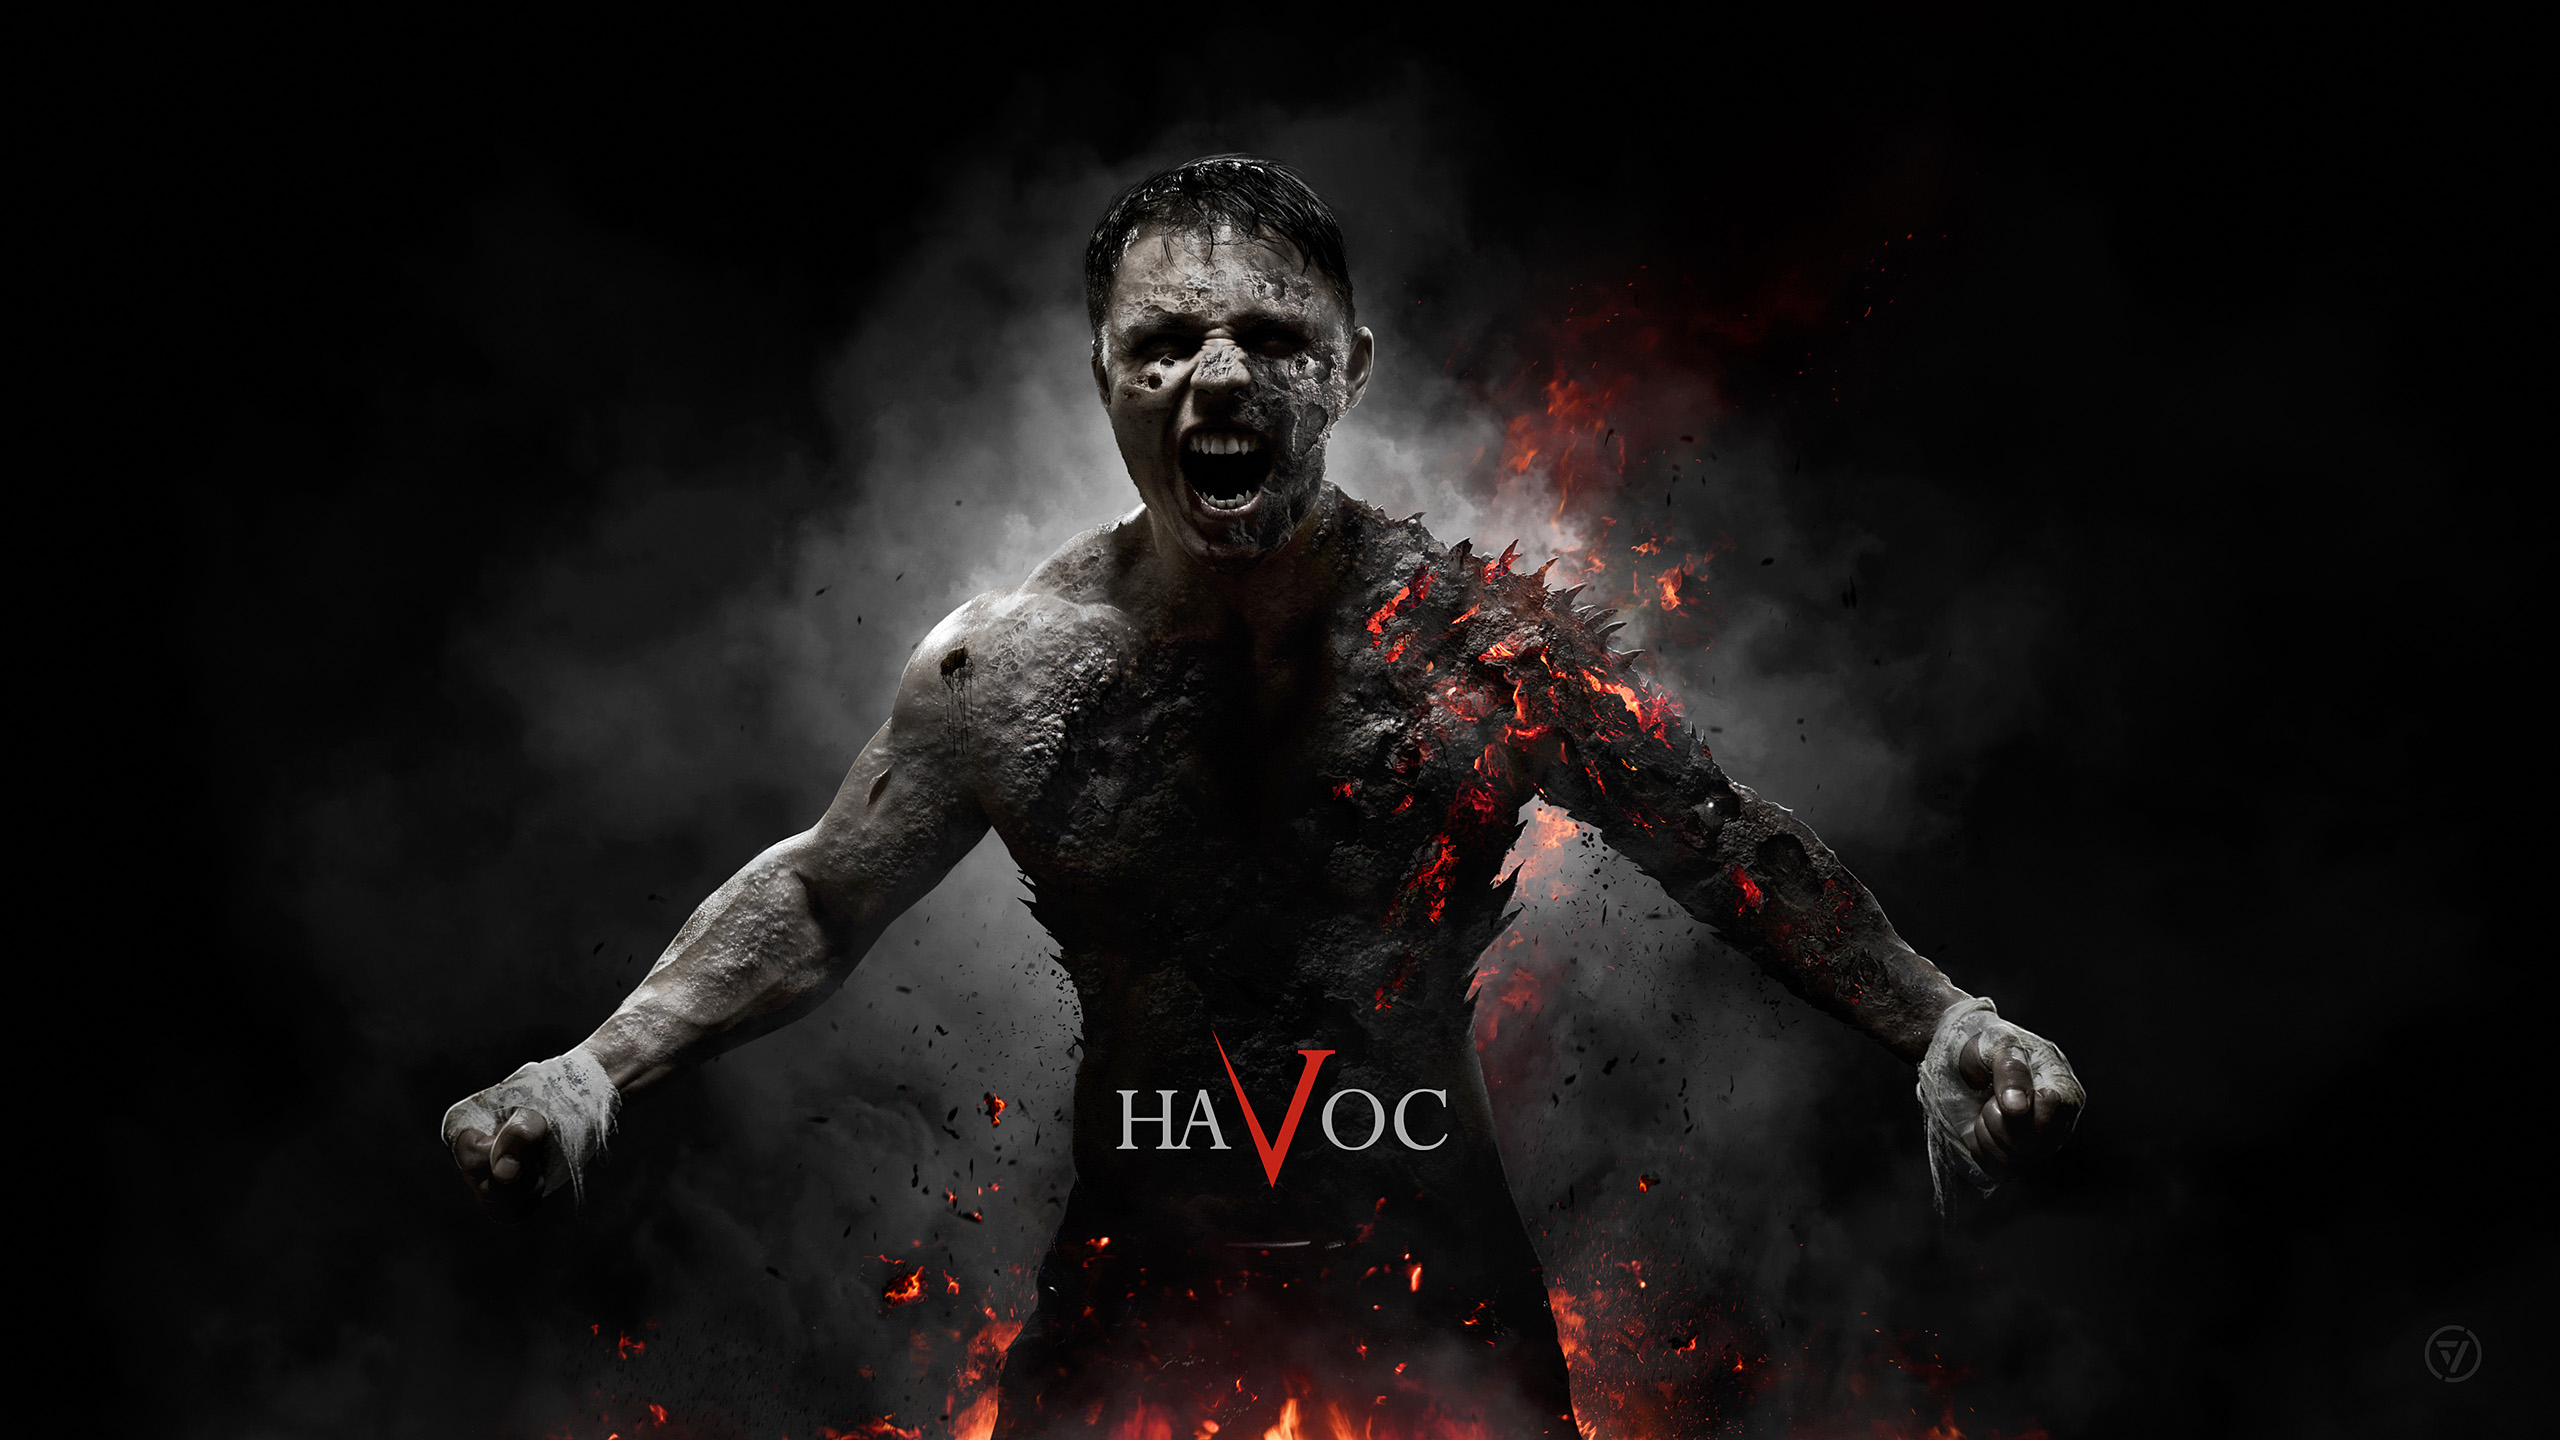 Havoc for 2560 x 1440 HDTV resolution